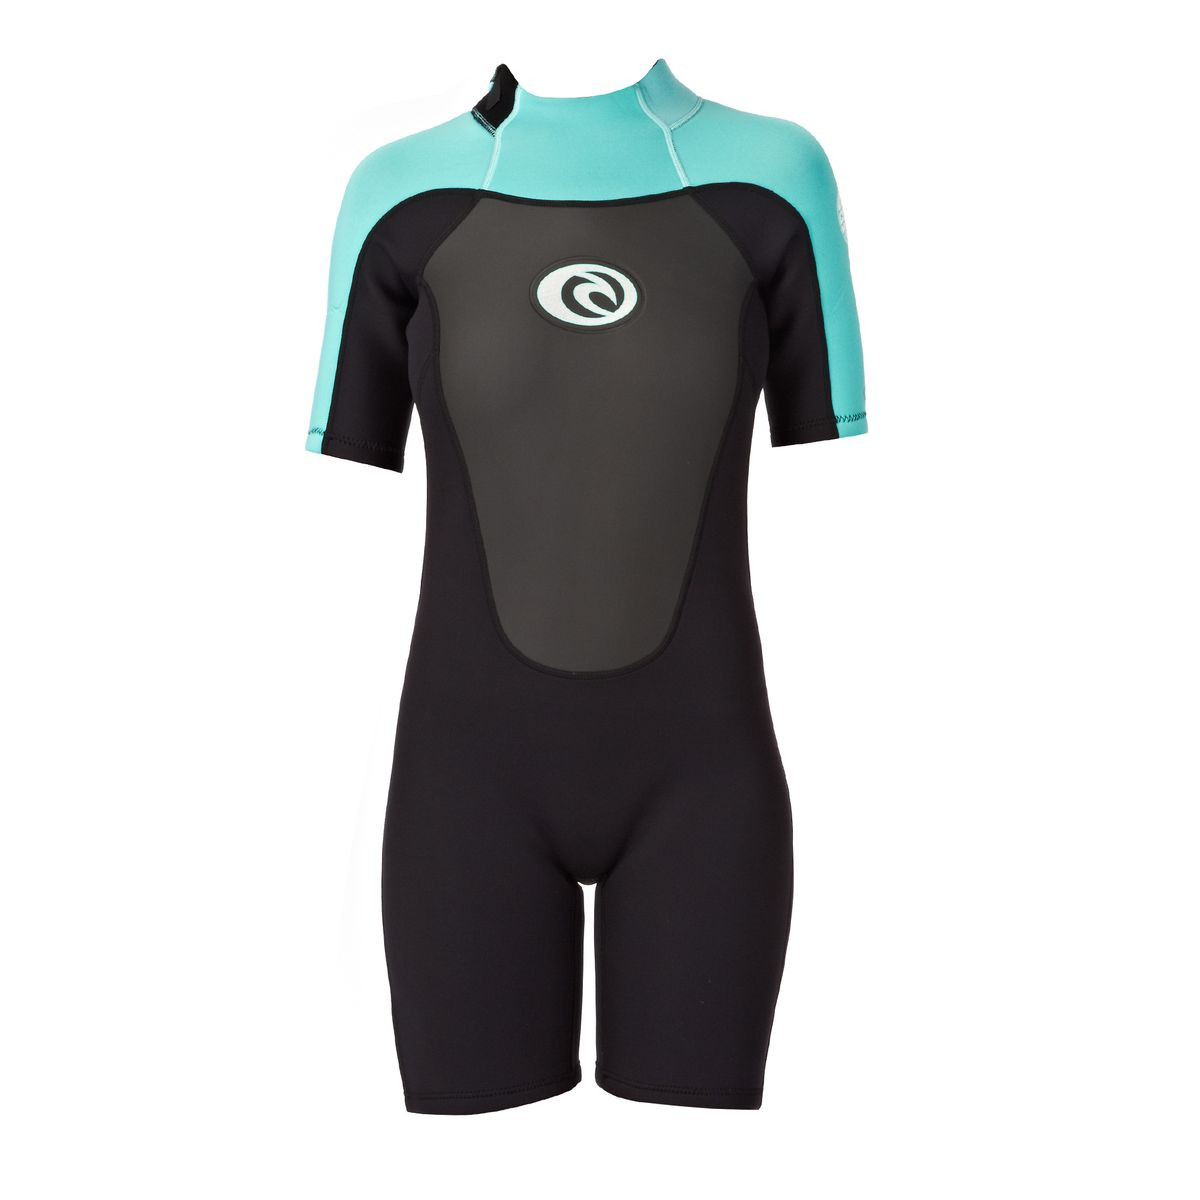 Rip Curl Women s Omega 2mm Back Zip Shorty Wetsuit - Turquoise 3696bea95